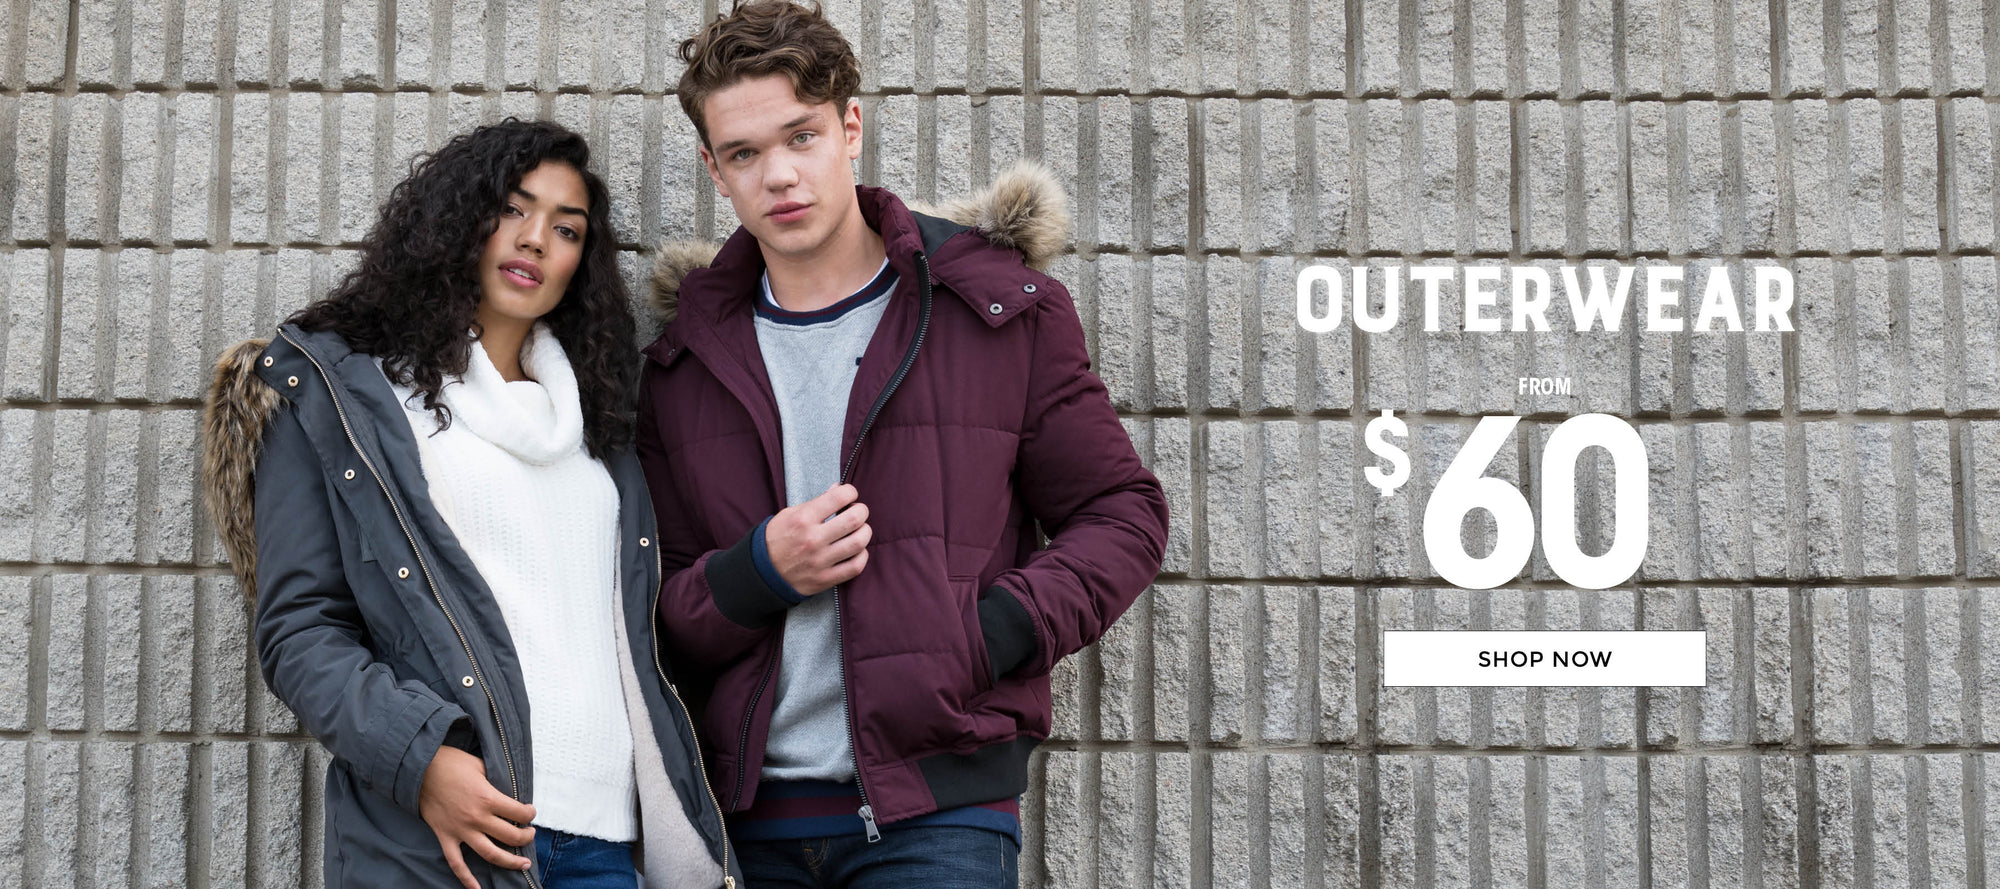 Stitches | Outerwear from $60 - Shop Now